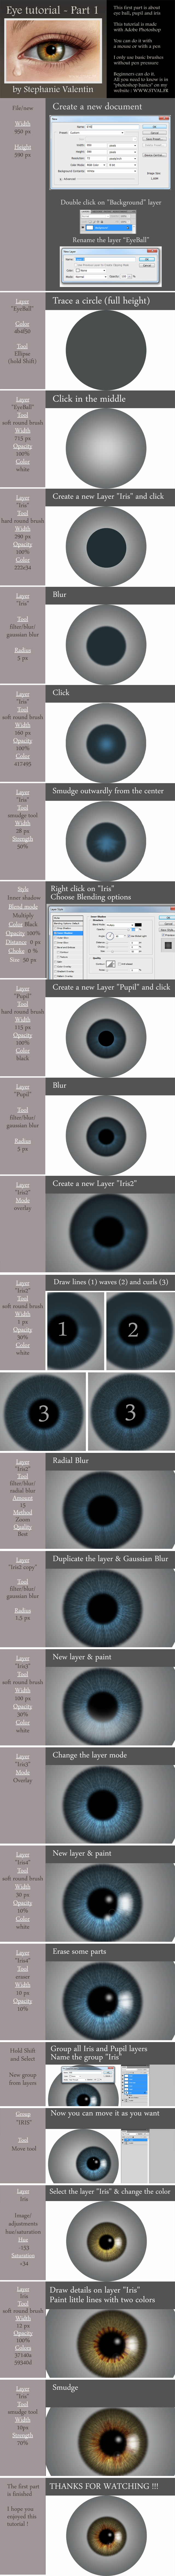 How to draw realistic EYE - Part 1/3 by StephanieVALENTIN